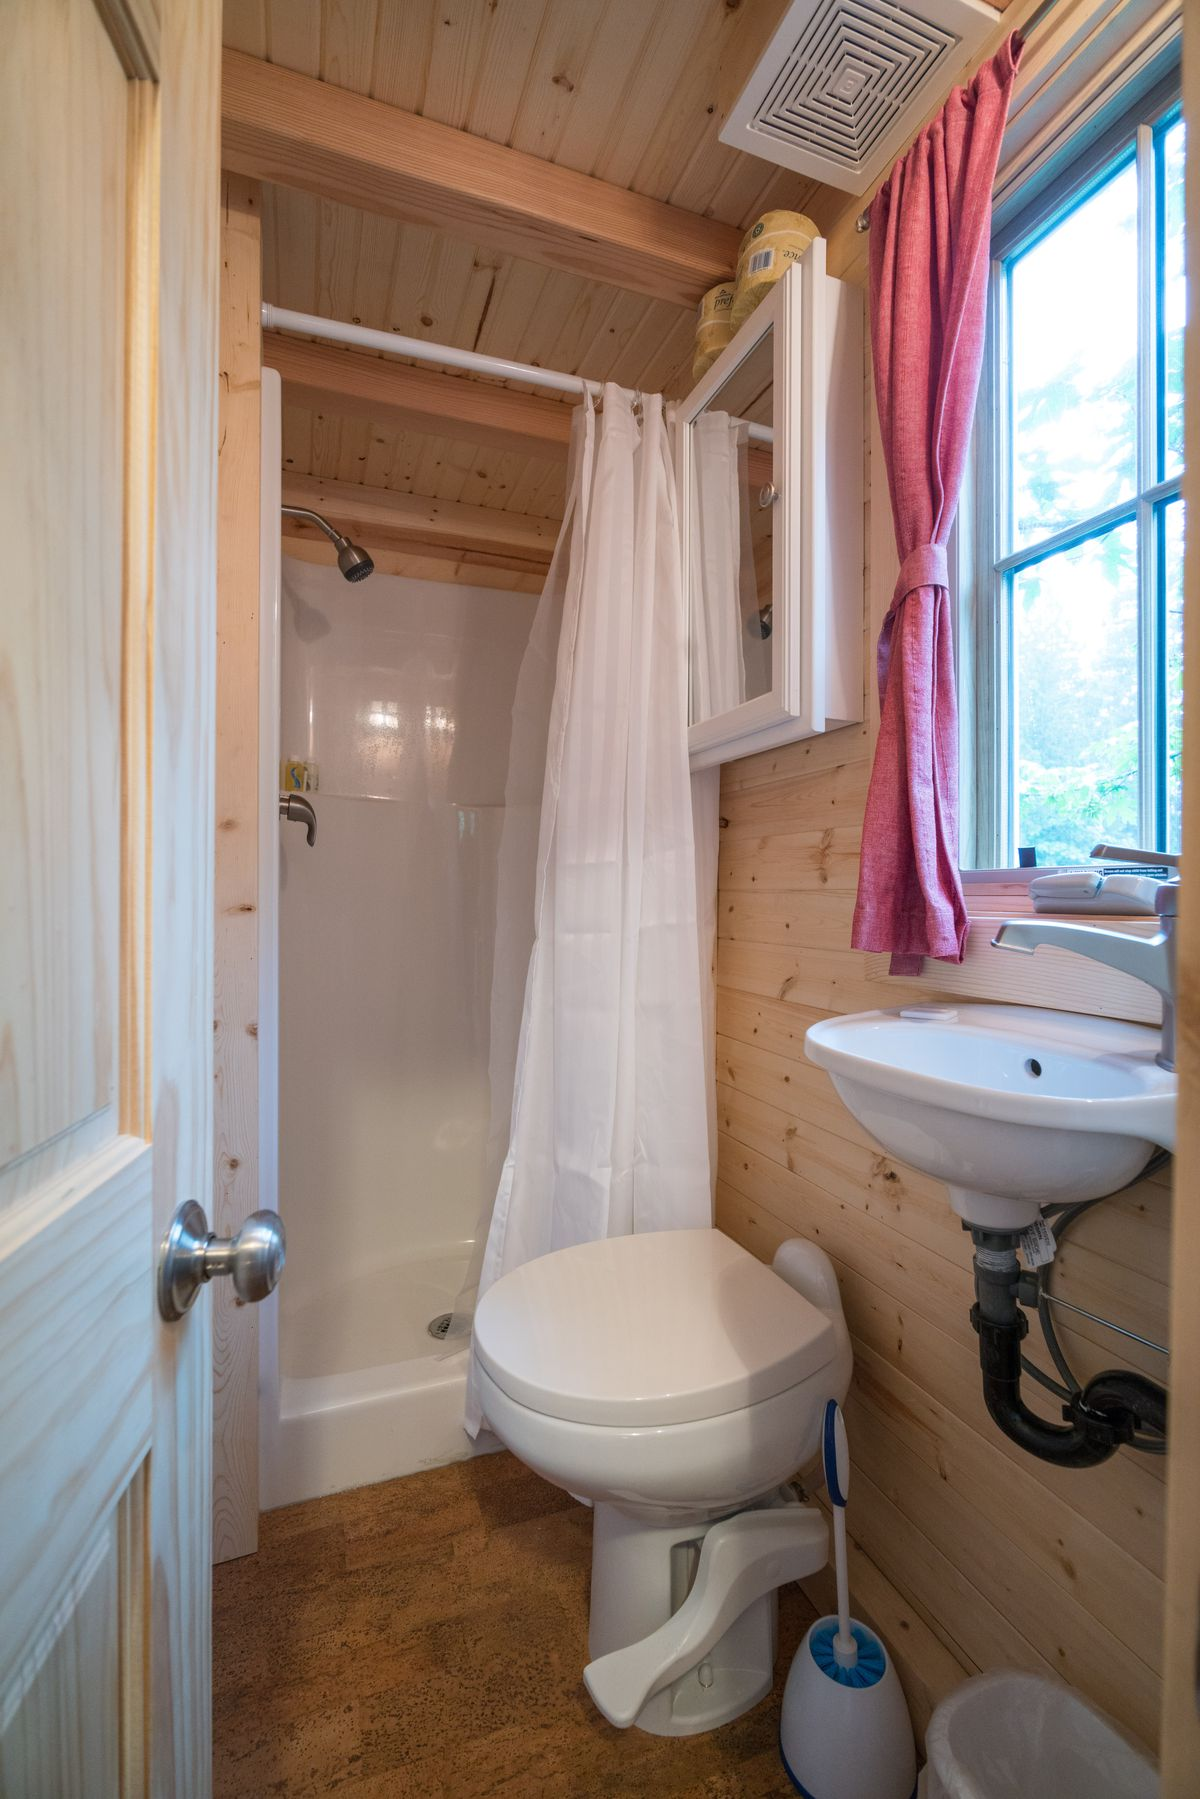 A shower, toilet, and micro sink in a tiny home.